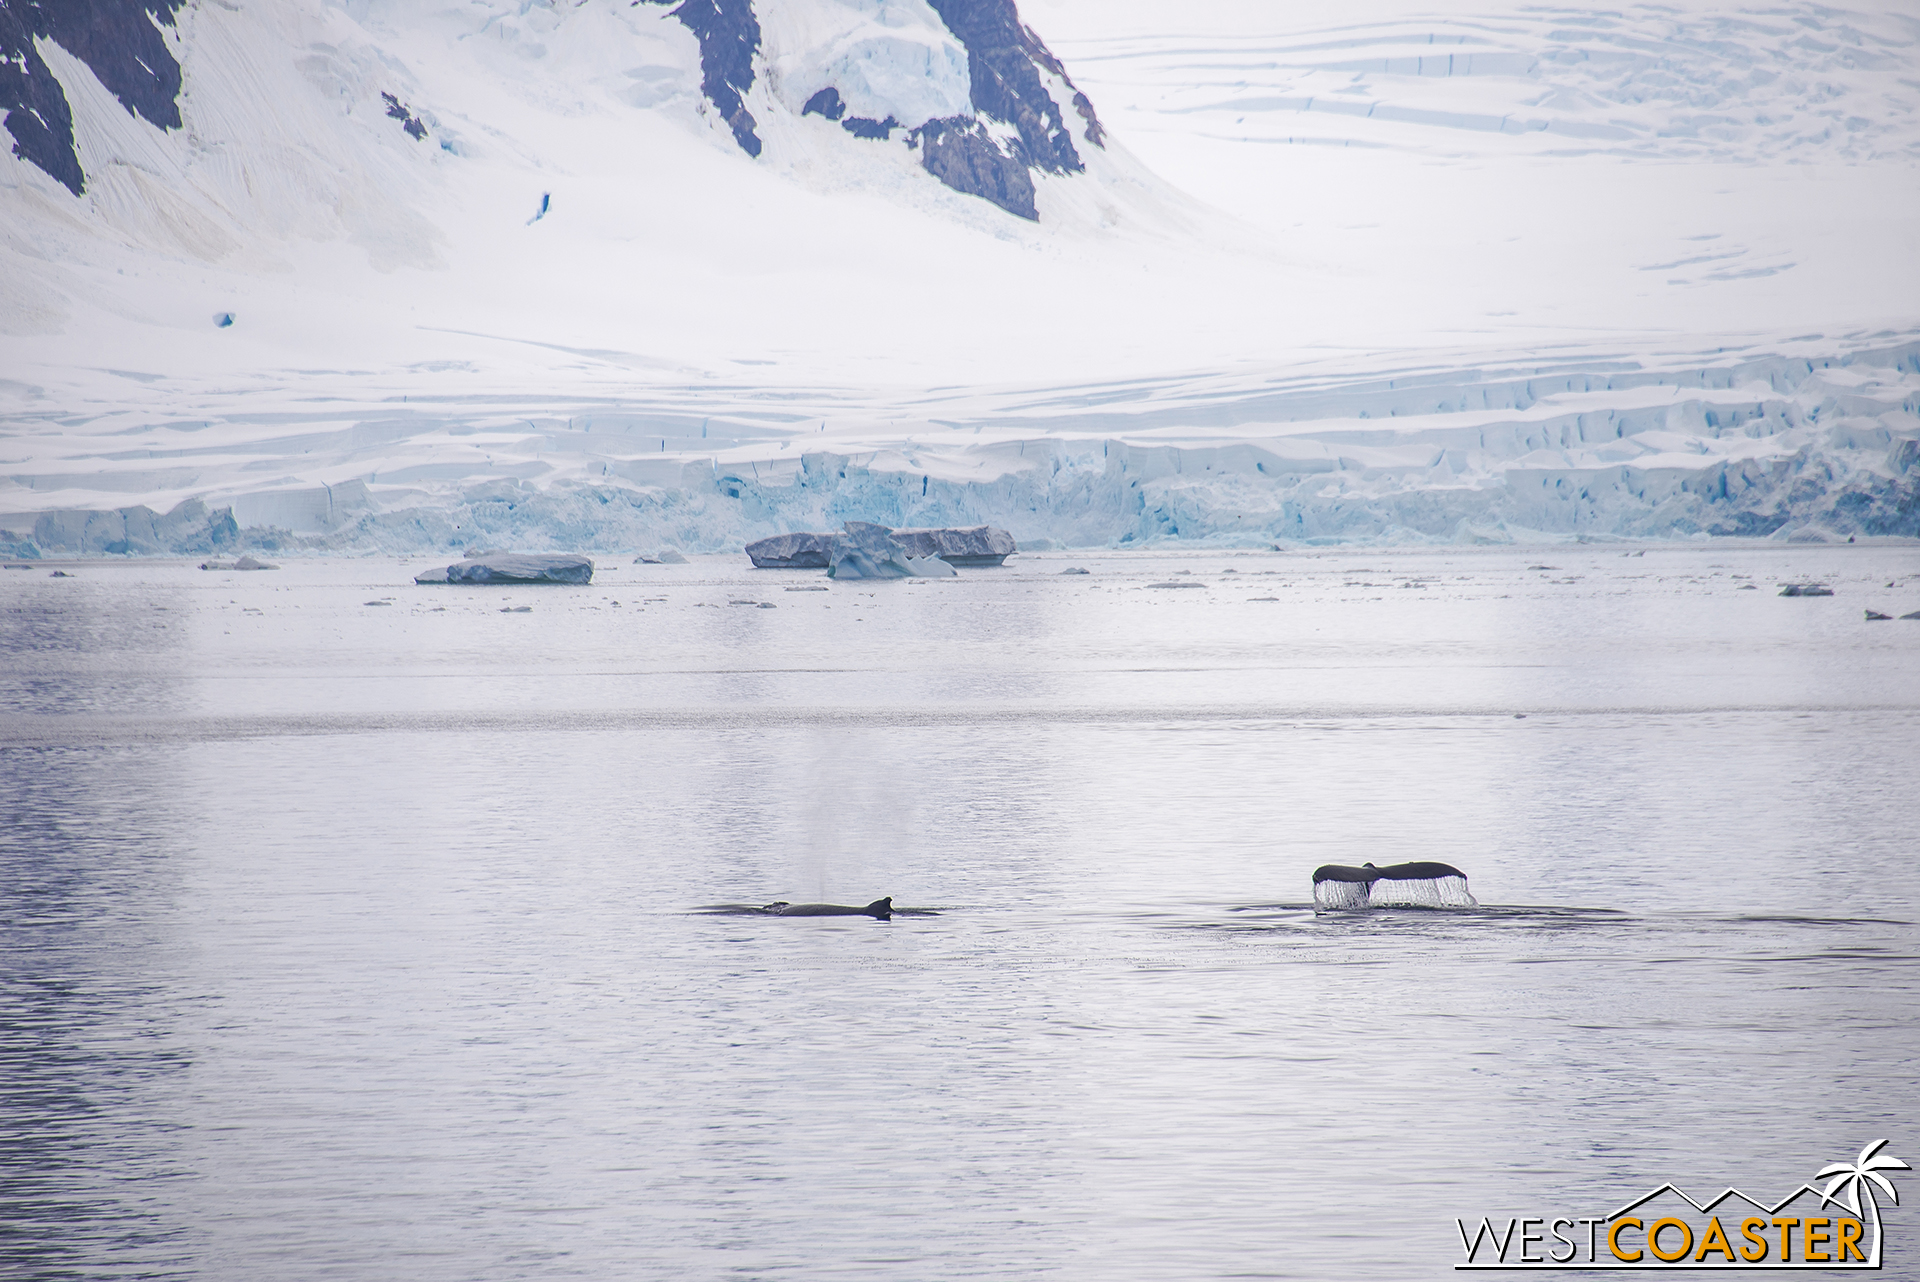 A pair of humpback whales in the distance, after the orcas have left.